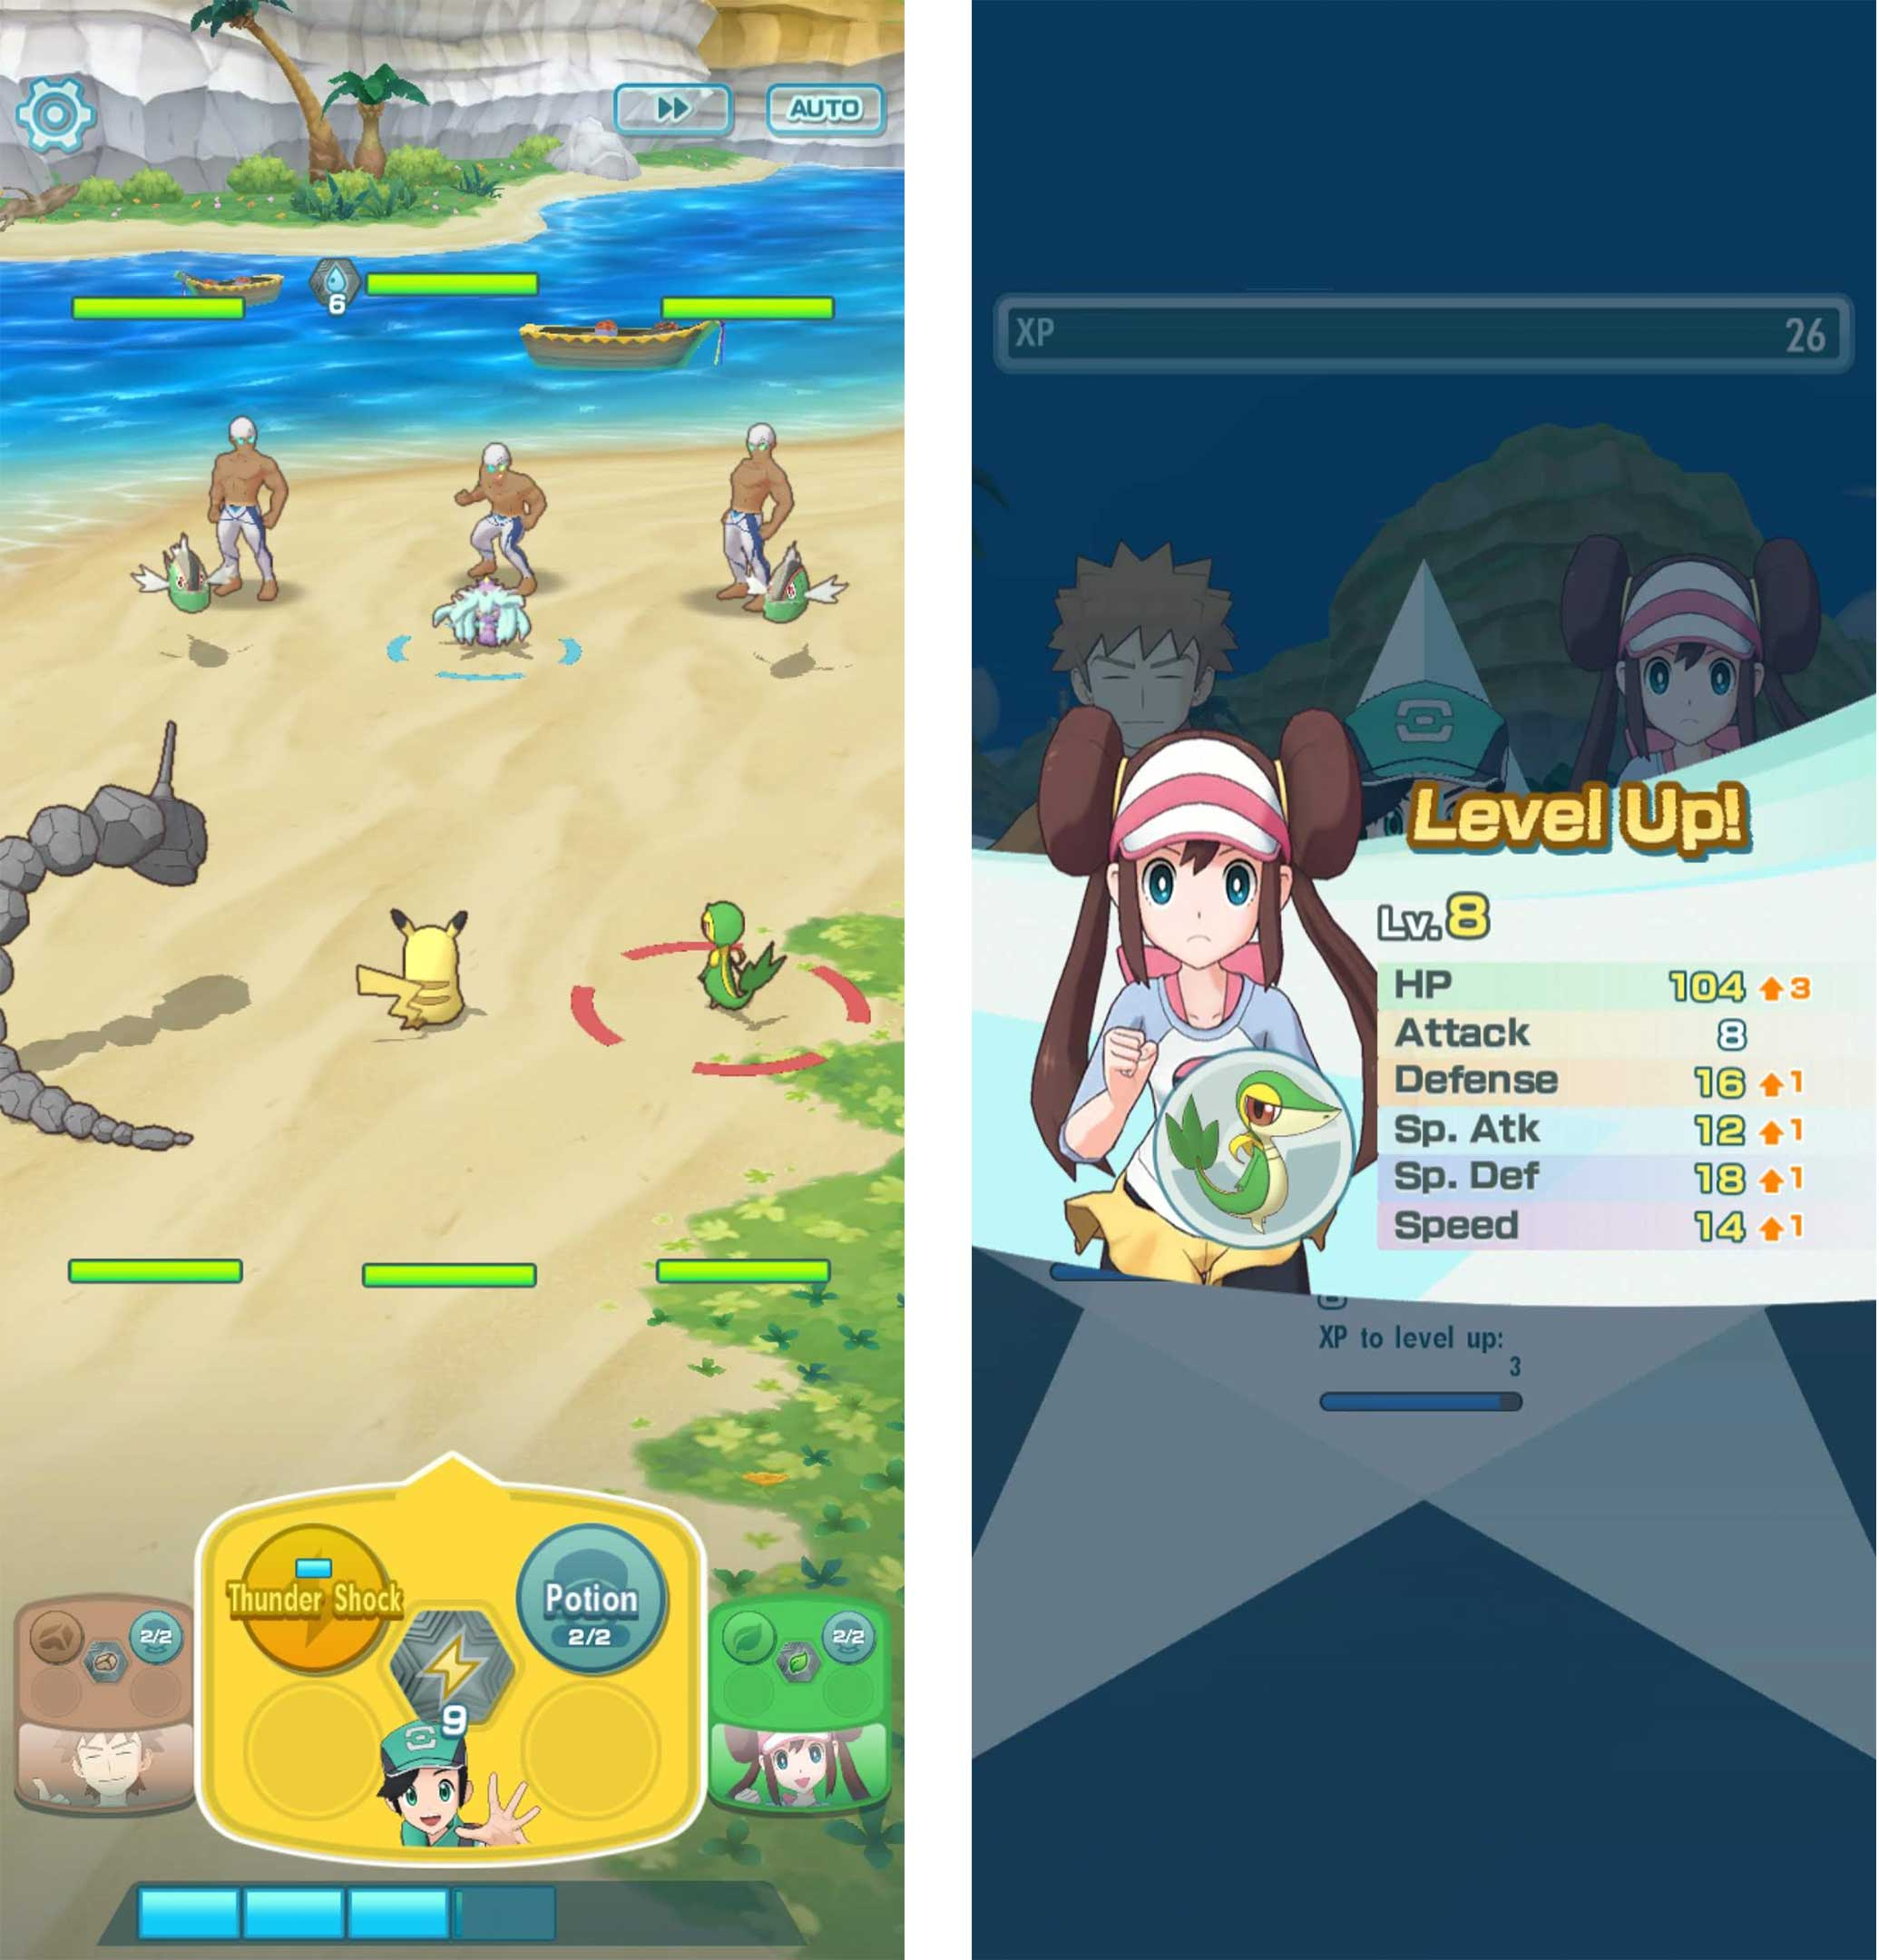 Pokémon Masters helps scratch that Pokémon itch until Sword